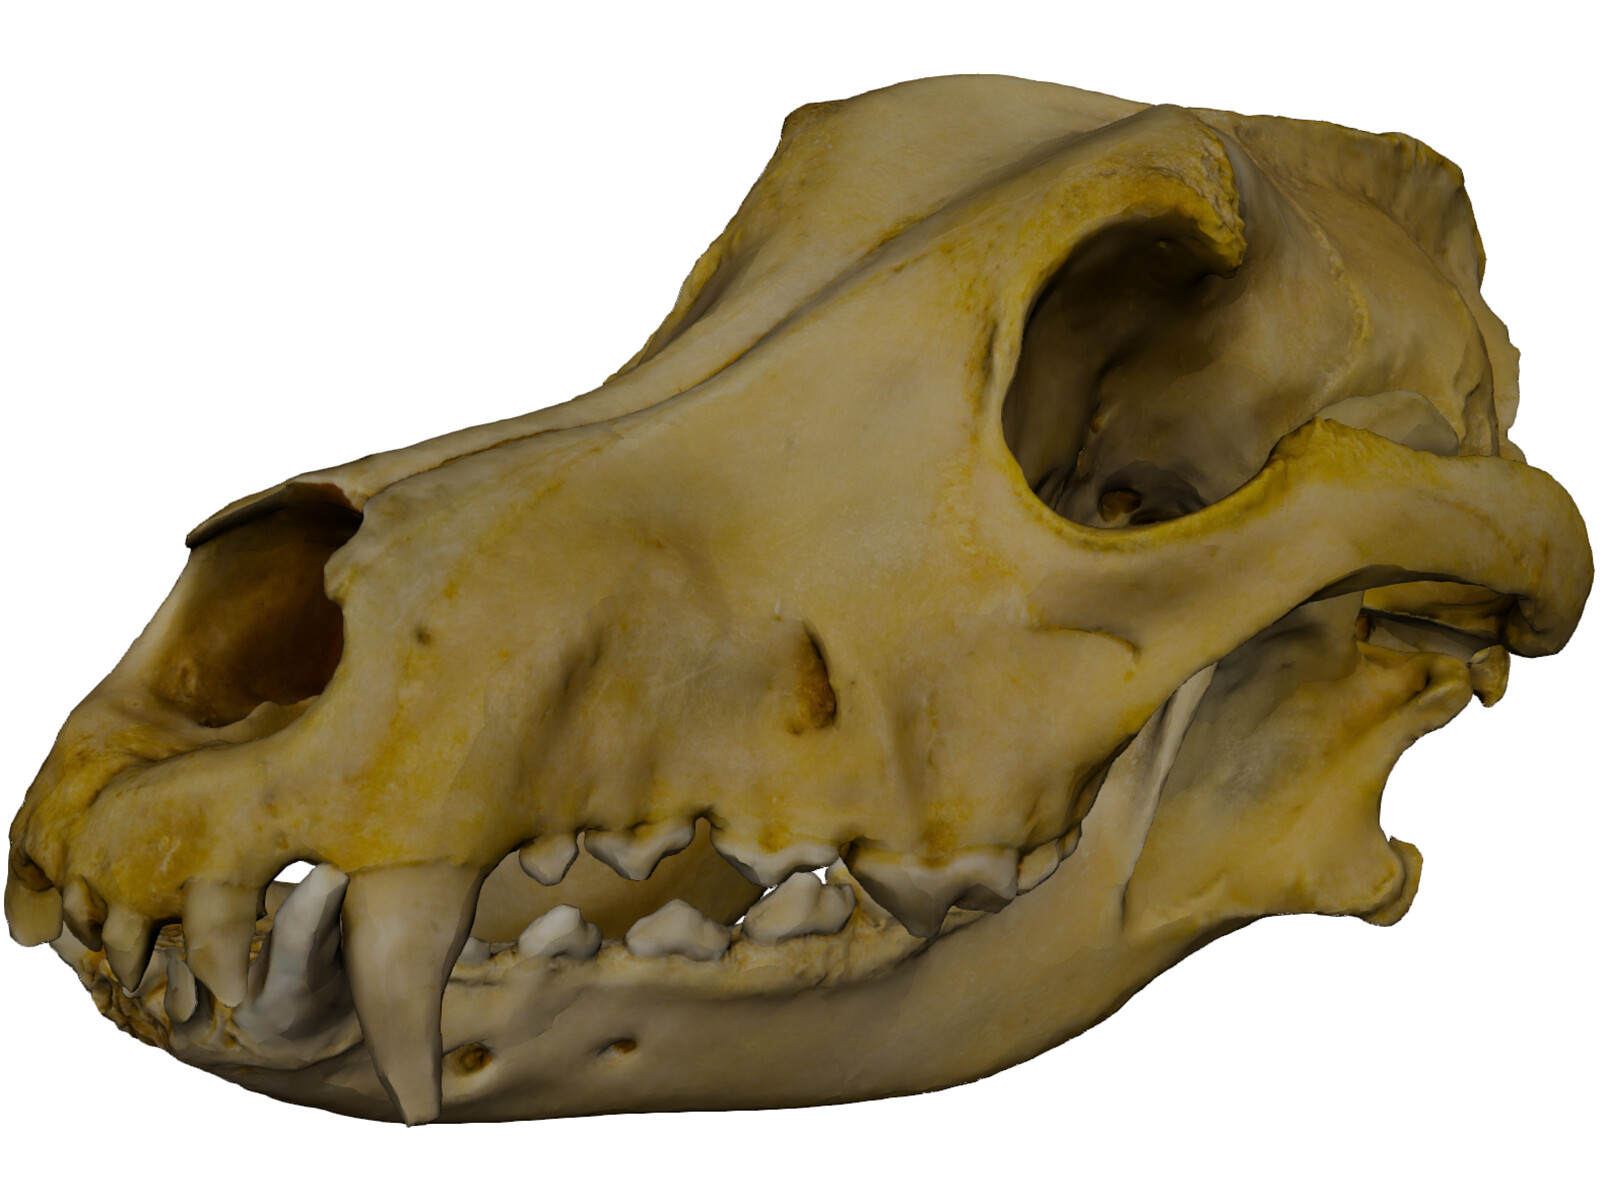 German Shepherd Male Dog Skull Scan 3D Model